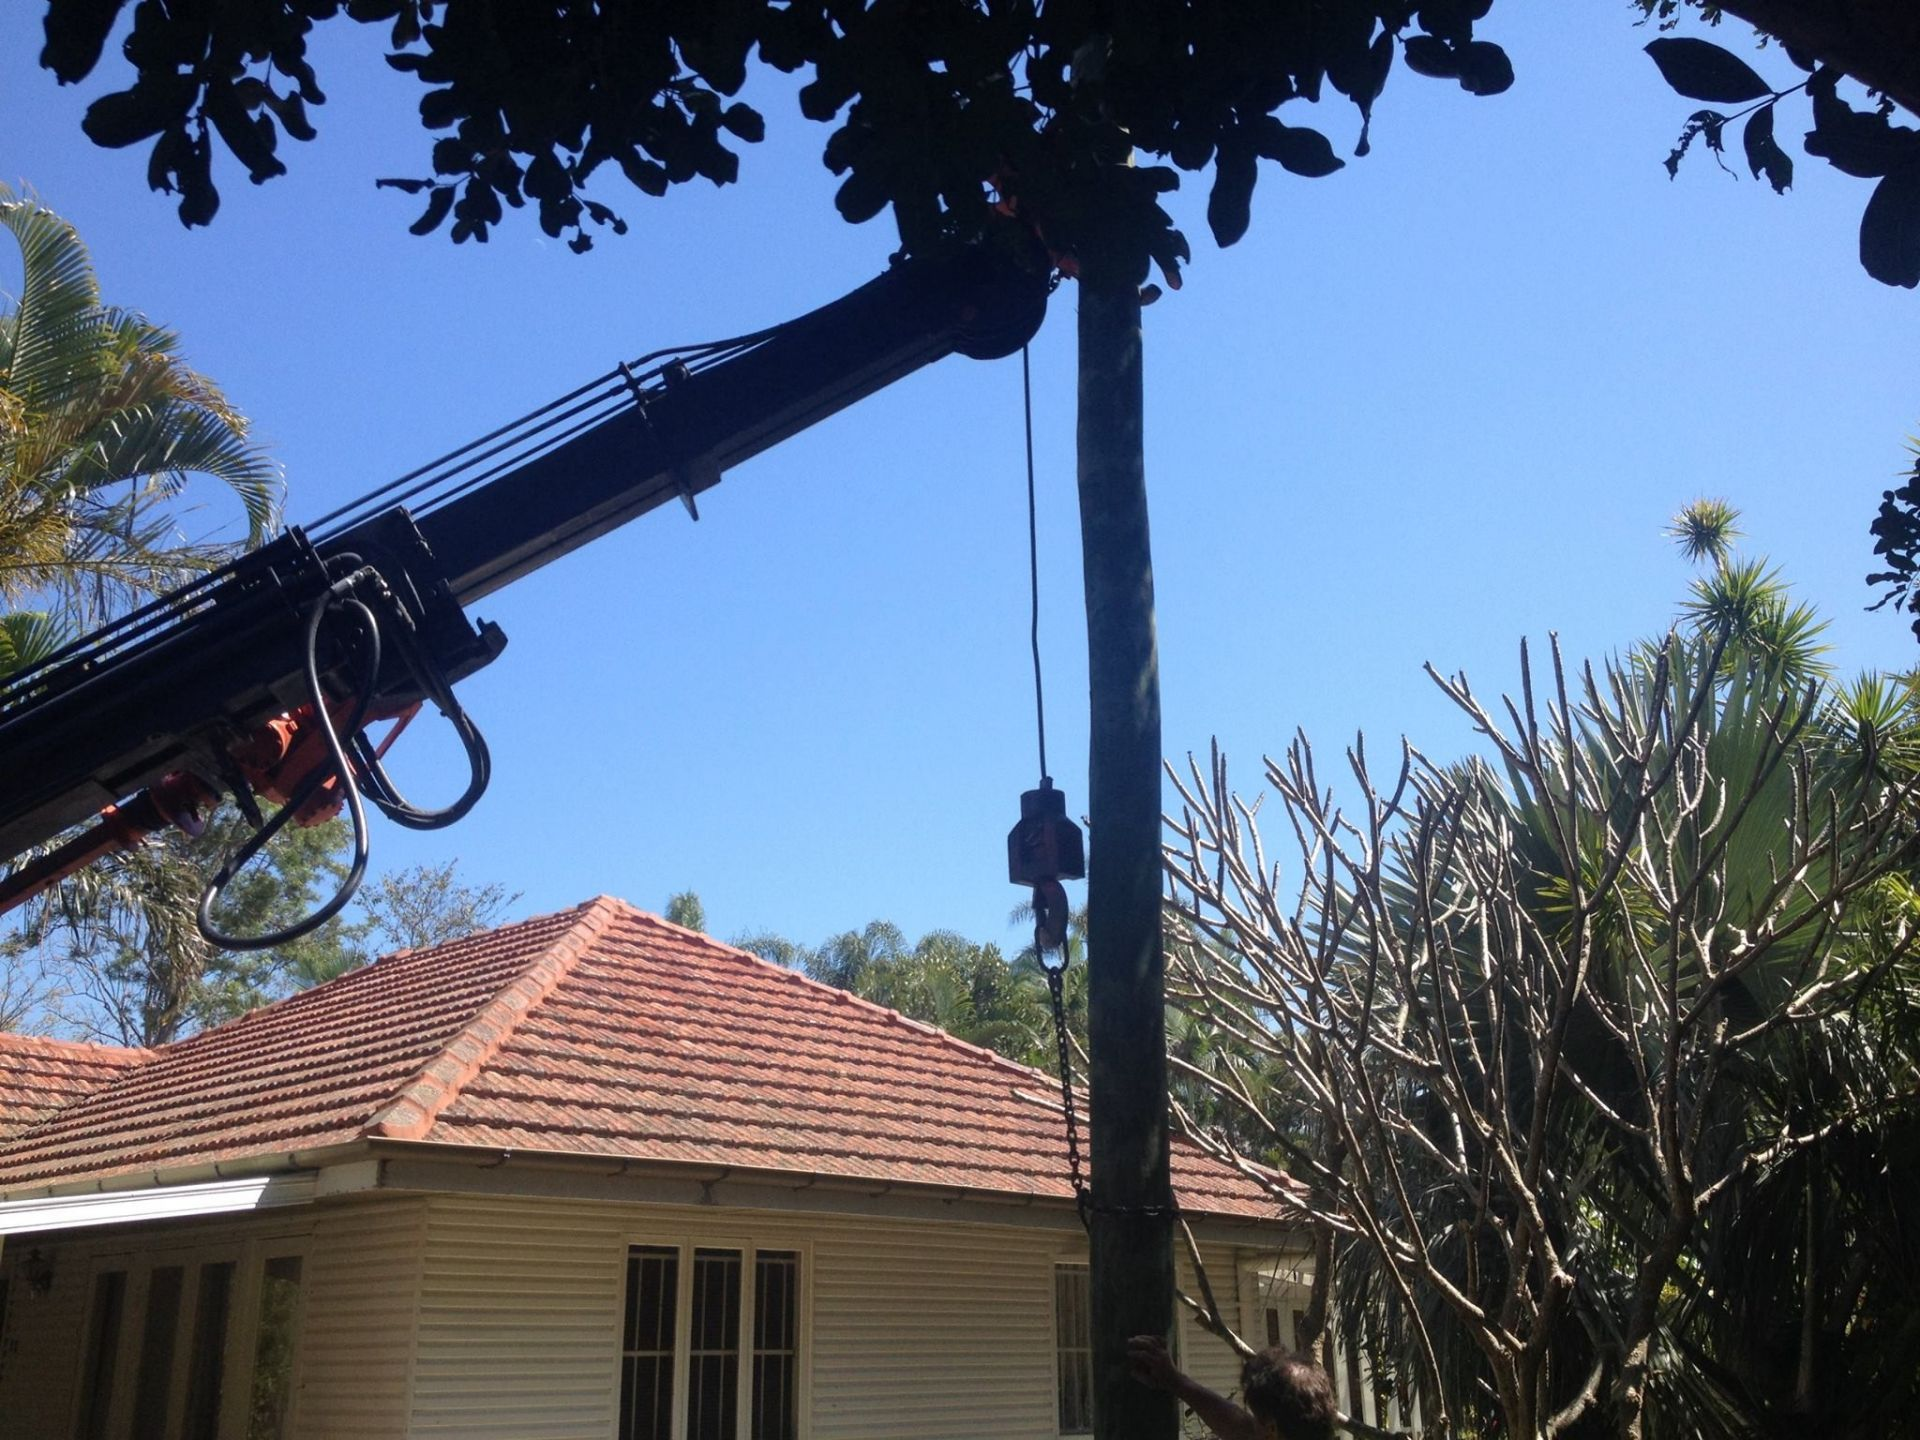 ALL POLE SERVICES (POWER POLE INSTALLATION/ REPLACEMENT)